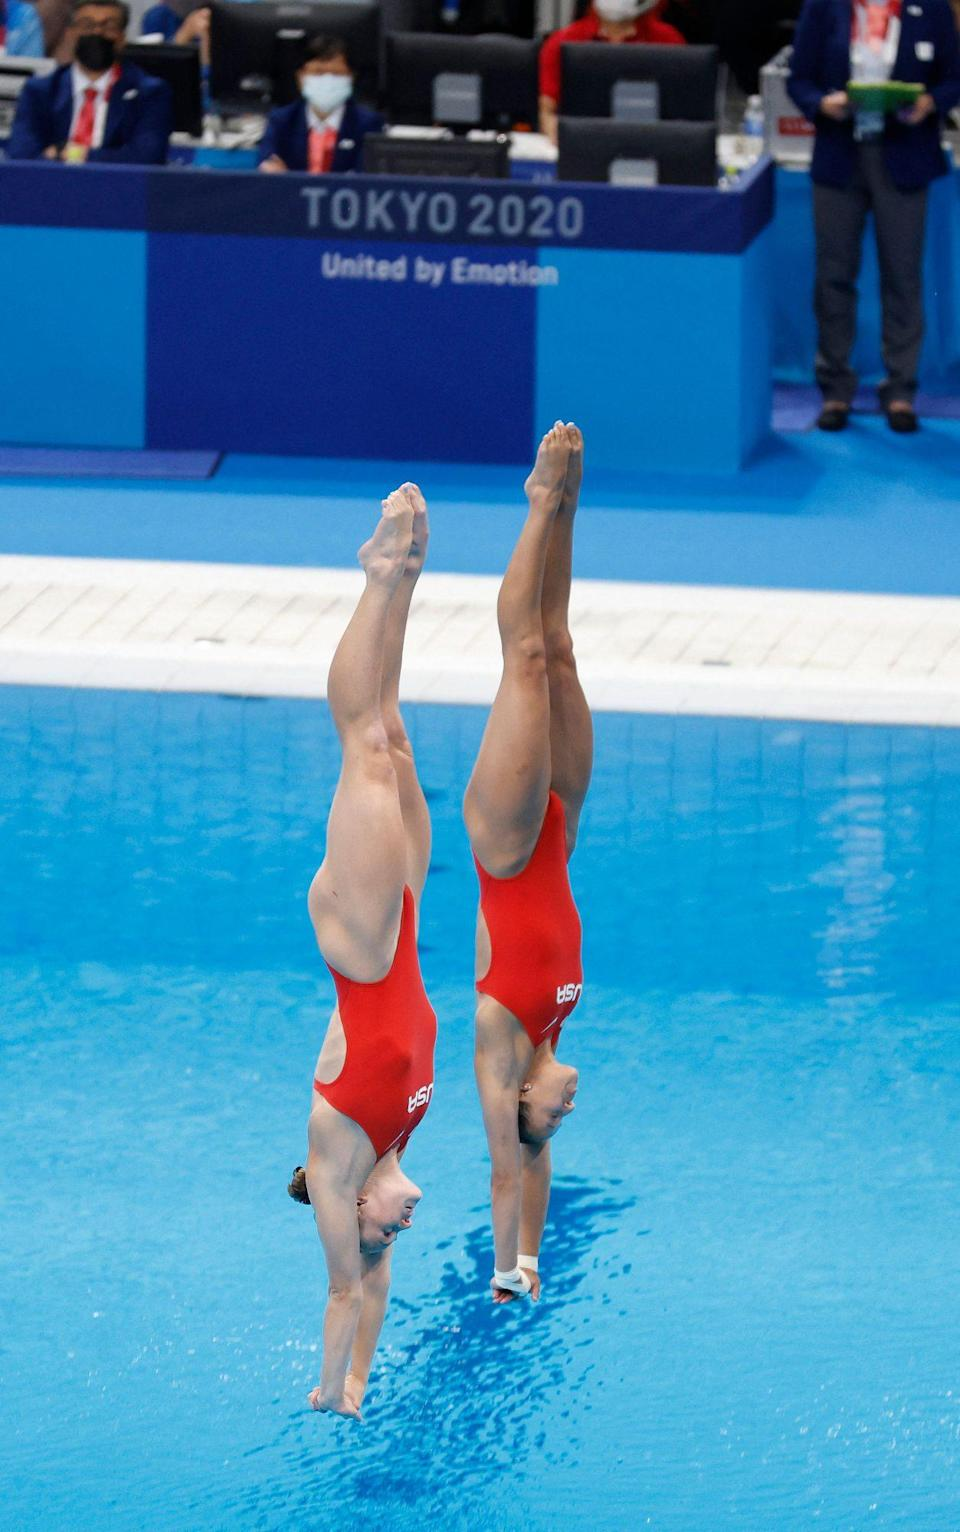 """<p>Biography: Parratto is 27 and Schnell is 22</p> <p>Event: Women's synchronized 10m platform diving</p> <p>Quote: Schnell: """"That last dive was probably one of the most nervewracking dives I've done in my entire career.""""</p>"""